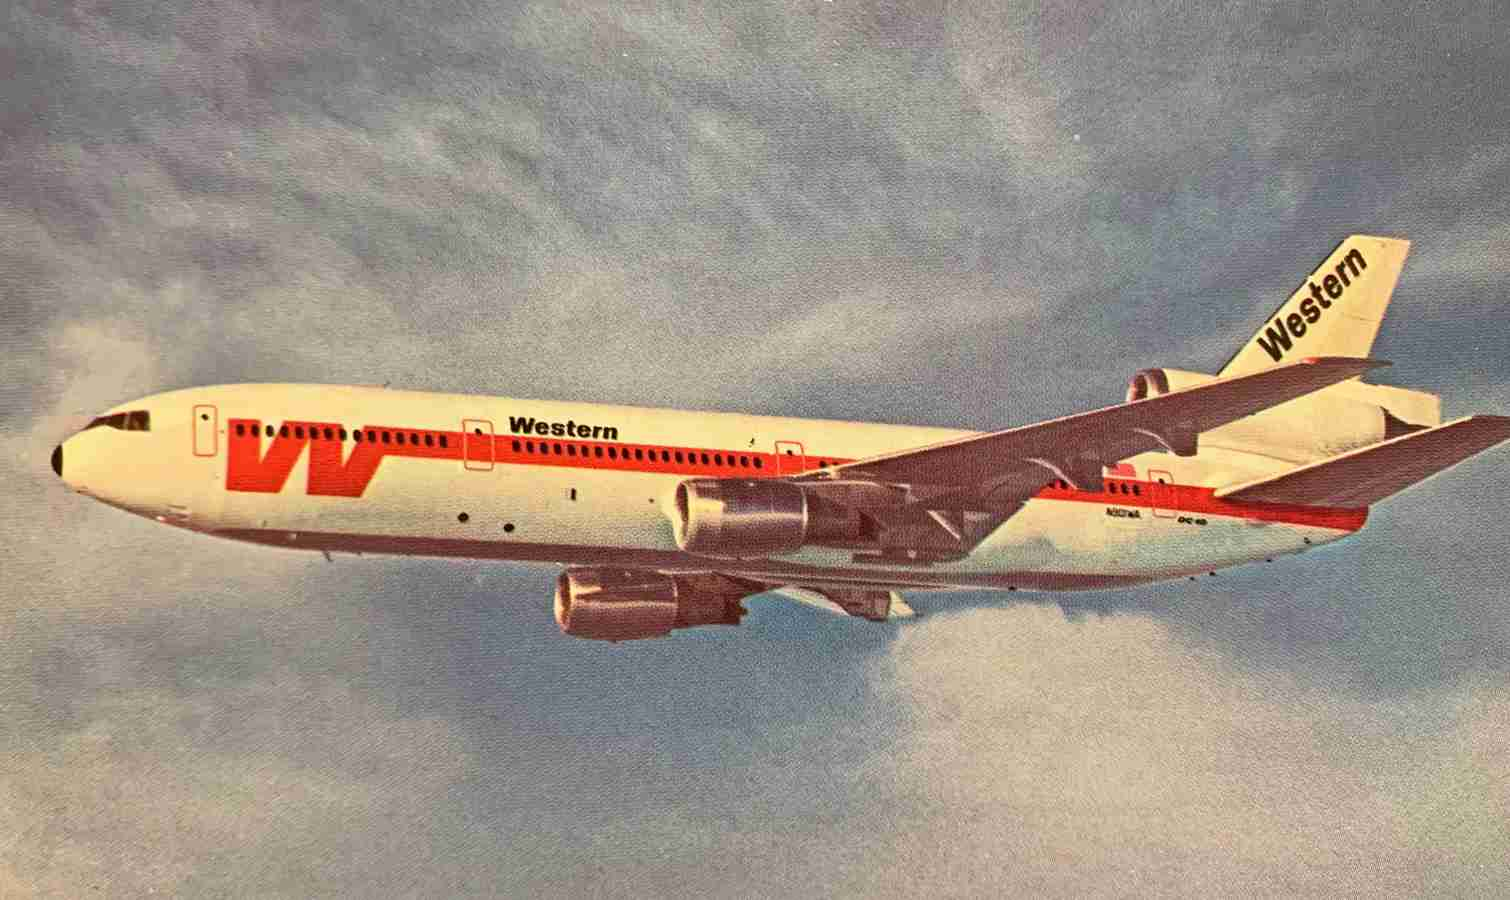 Western's jet fleet included 707s, 727s, and DC-10s like this one.